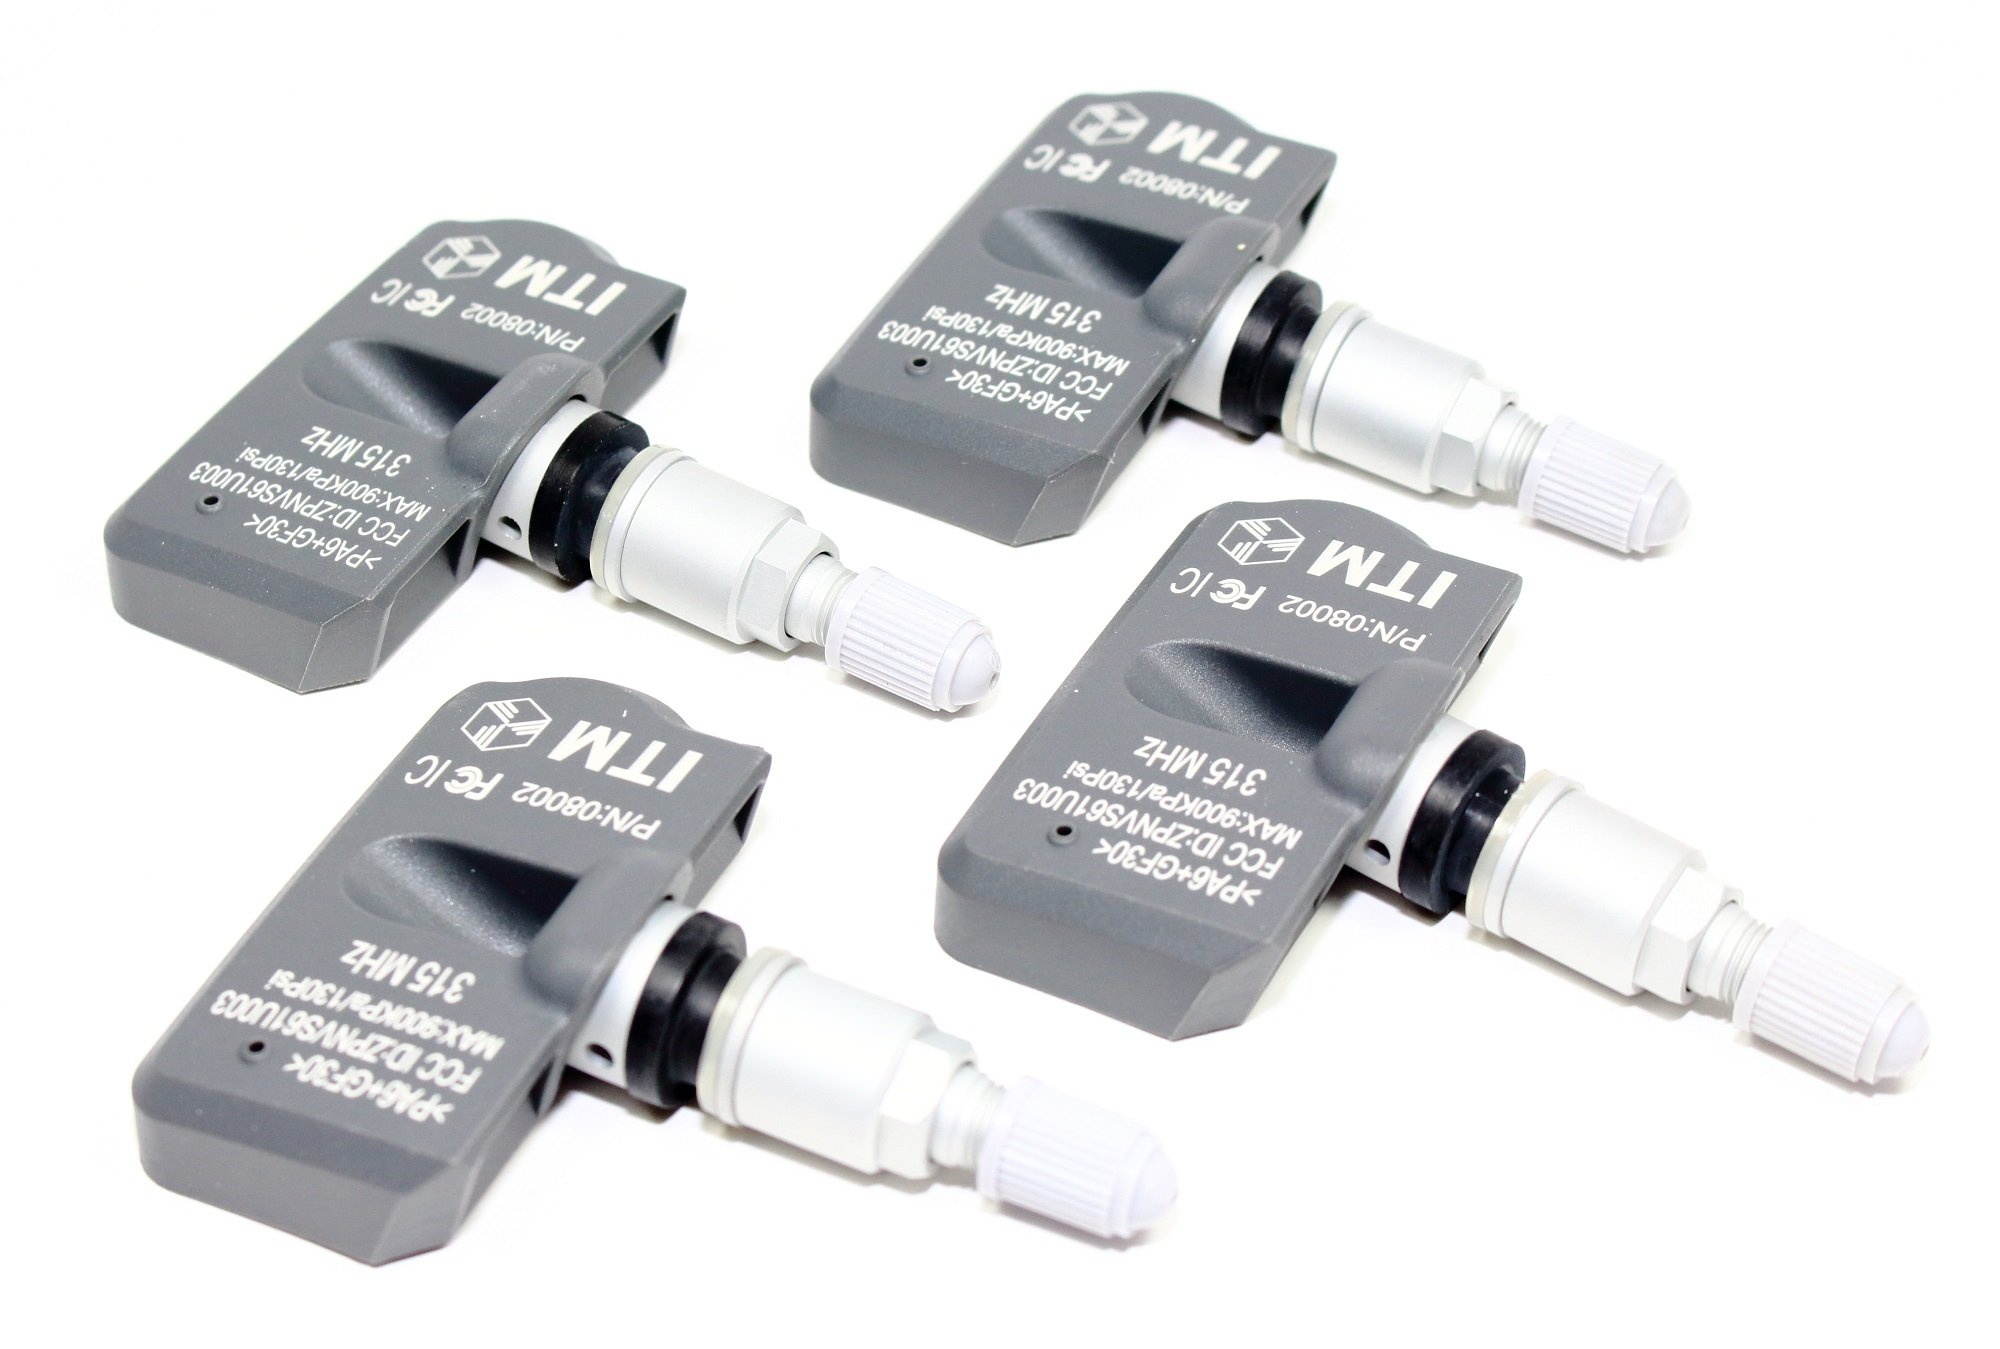 Set of 4 ITM 315mhz TPMS Tire Pressure Sensors 2006-2009 Range Rover HSE Supercharged OEM Replacement